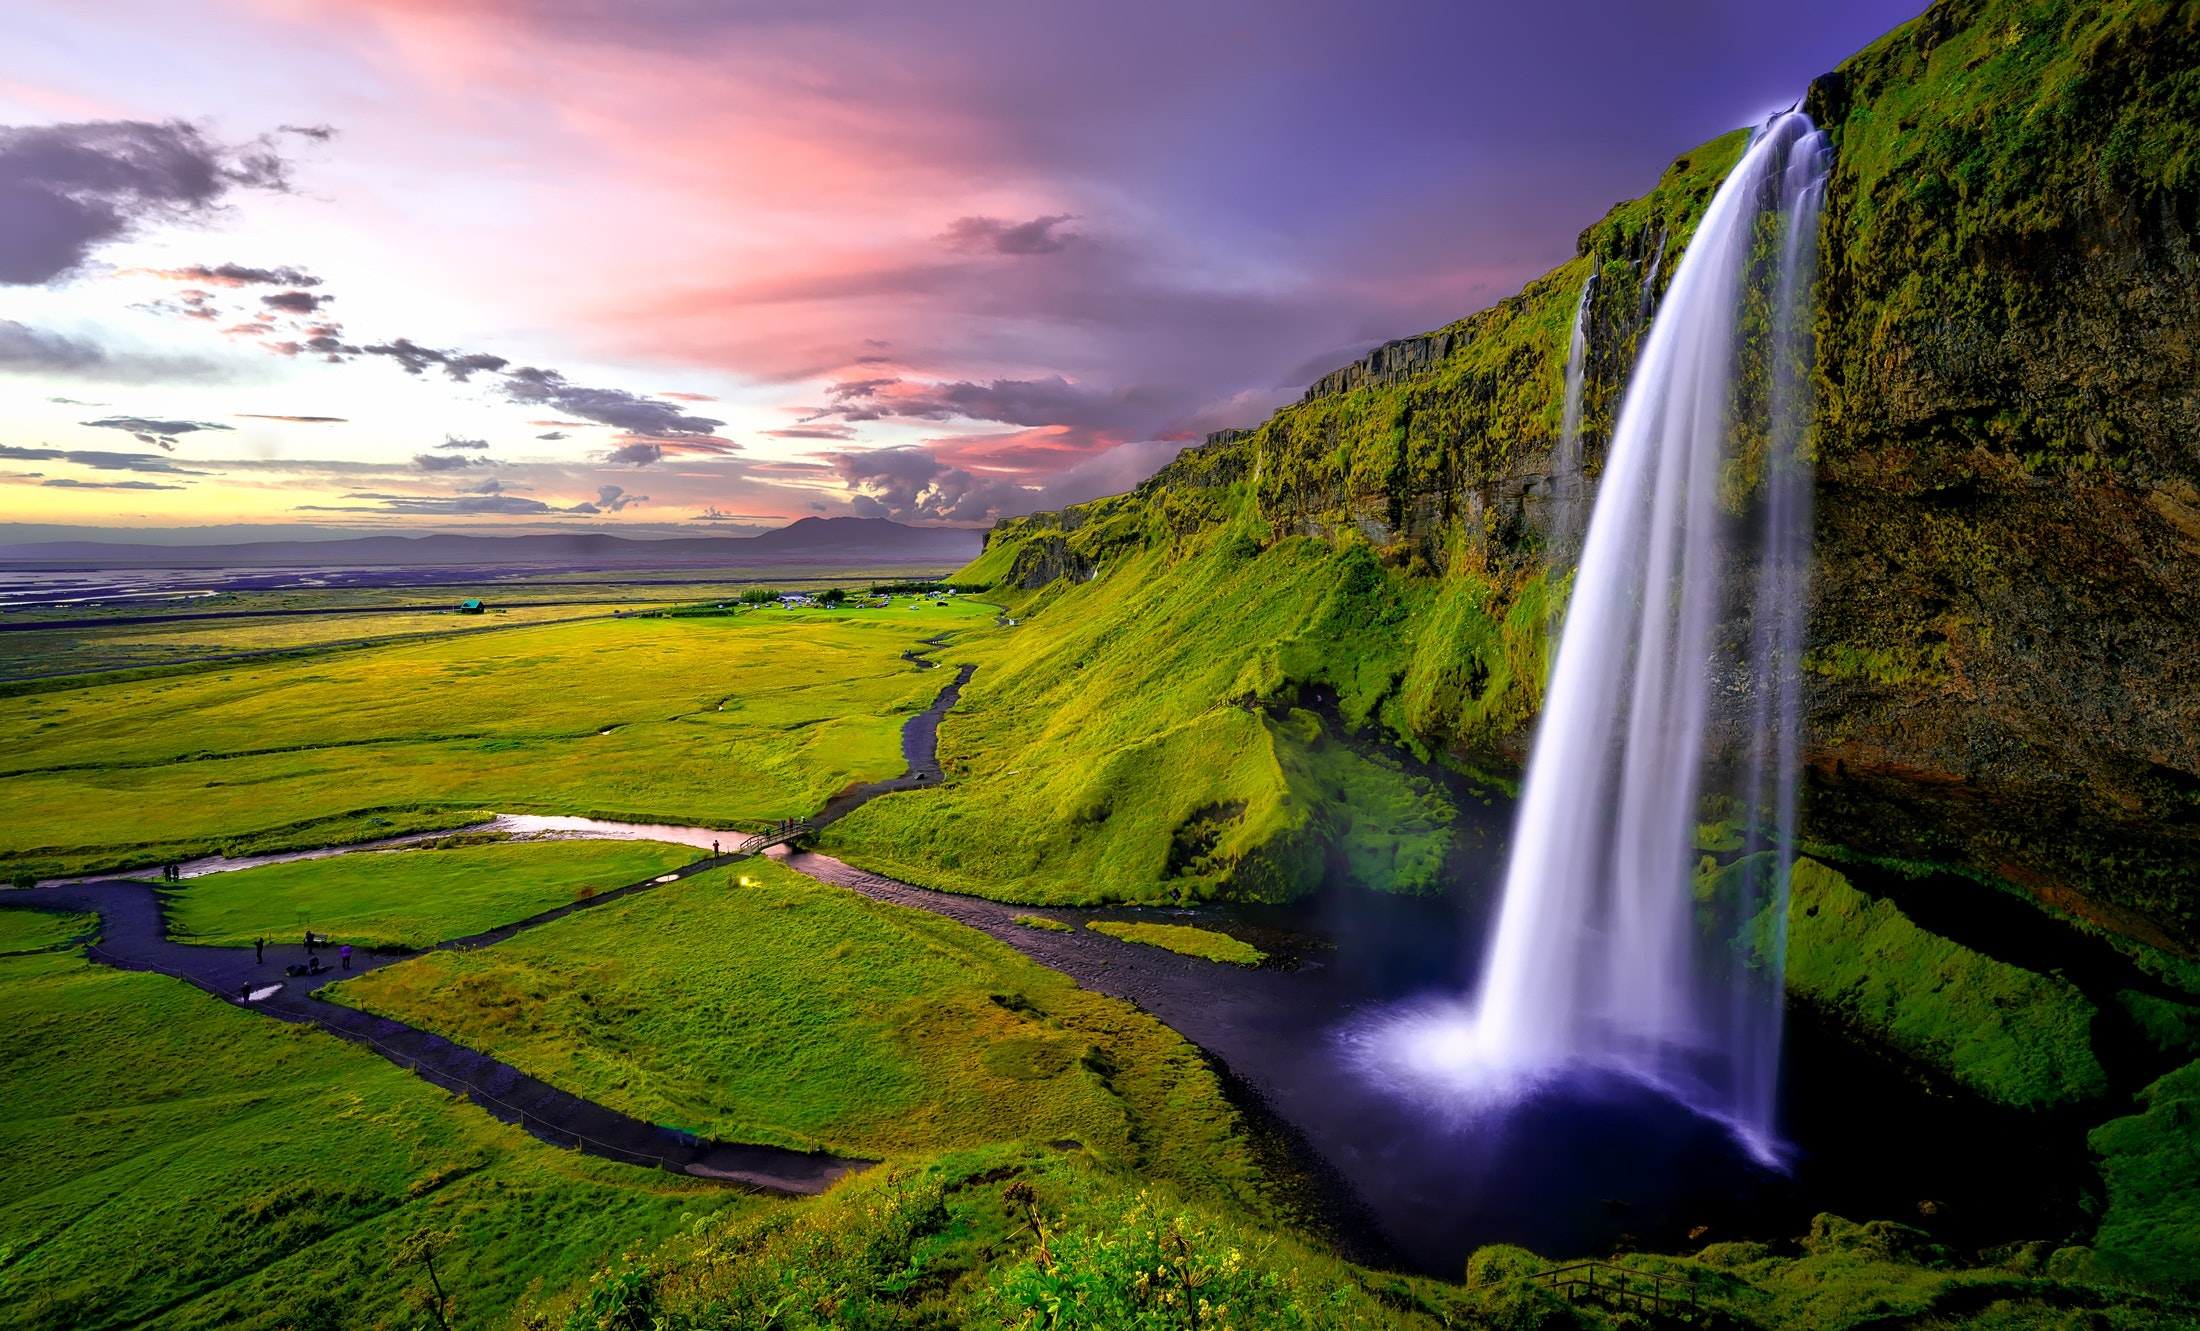 Time Lapse Photography of Waterfalls during Sunset by Pixabay